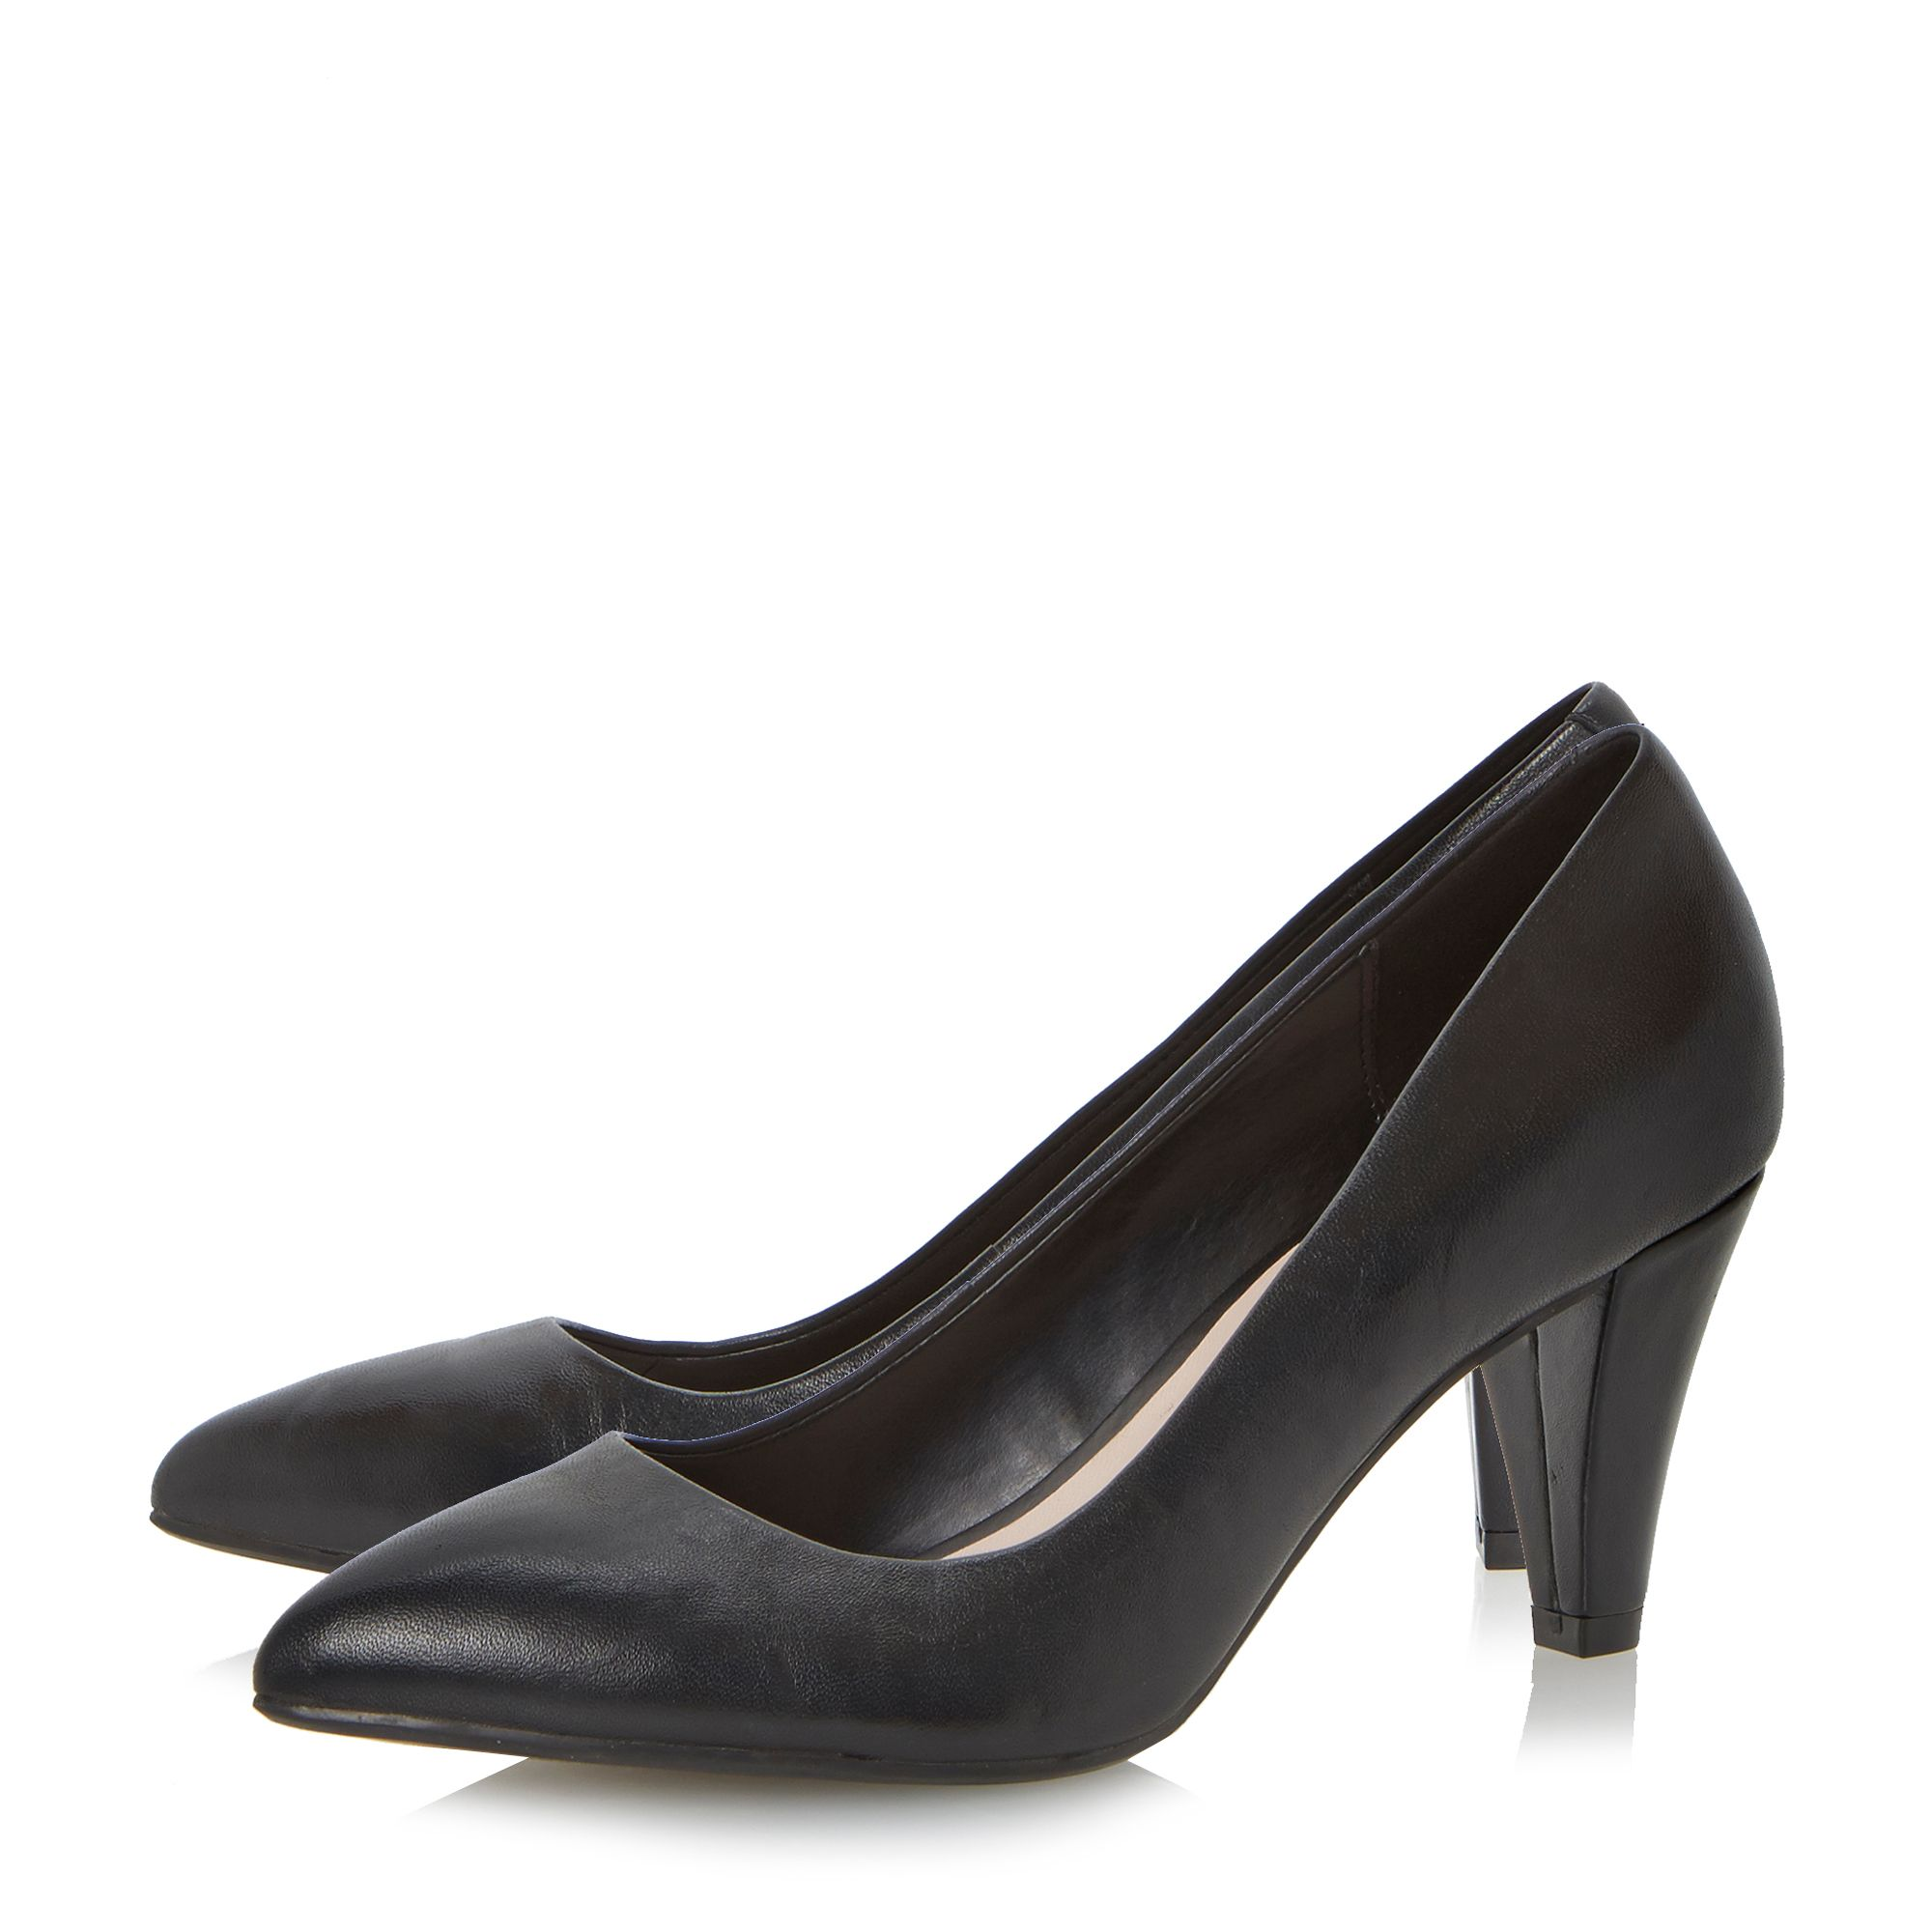 Ashlie block heel court shoes